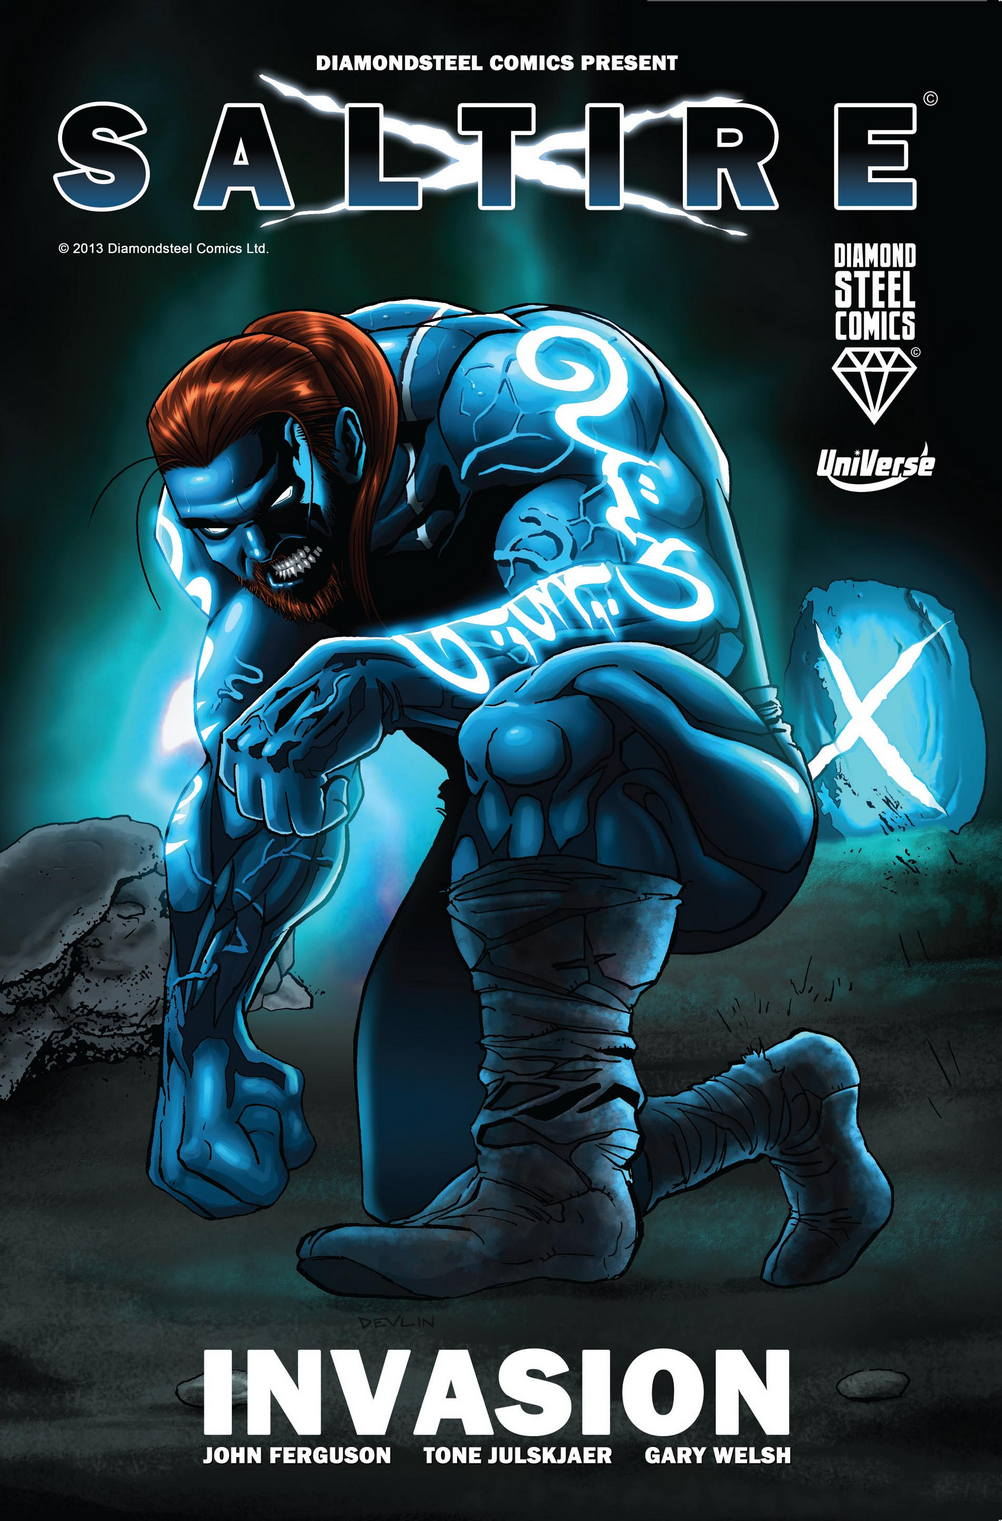 Scottish Superhero Launches At Dundee